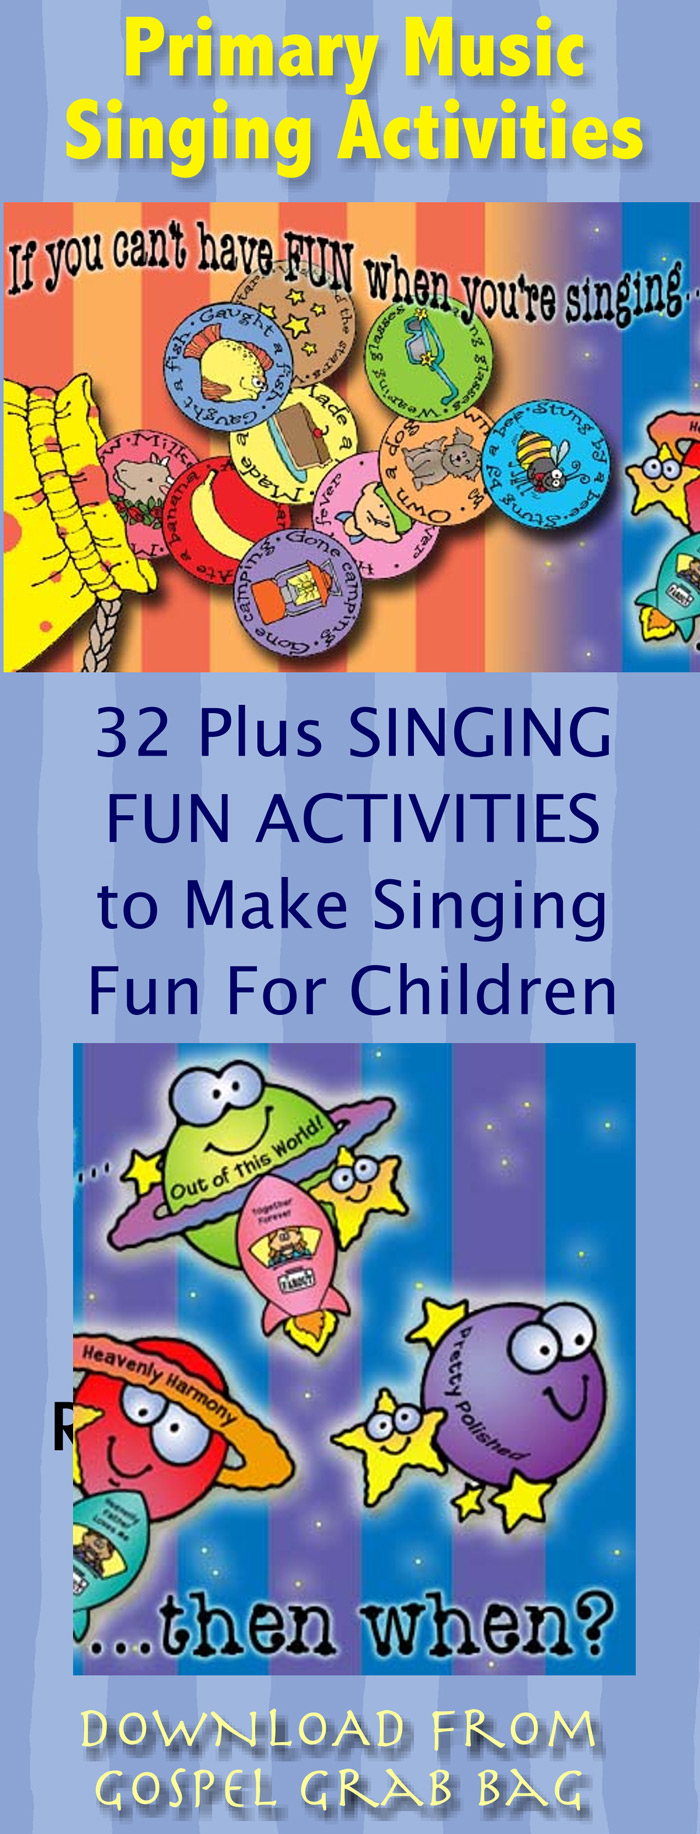 Primary Music Singing Time Activities to Motivate Children to Sing PRACTICE SONGS in Sunday School, Primary, Young Women, or family home evening, DOWNLOAD from GospelGrabBag.com